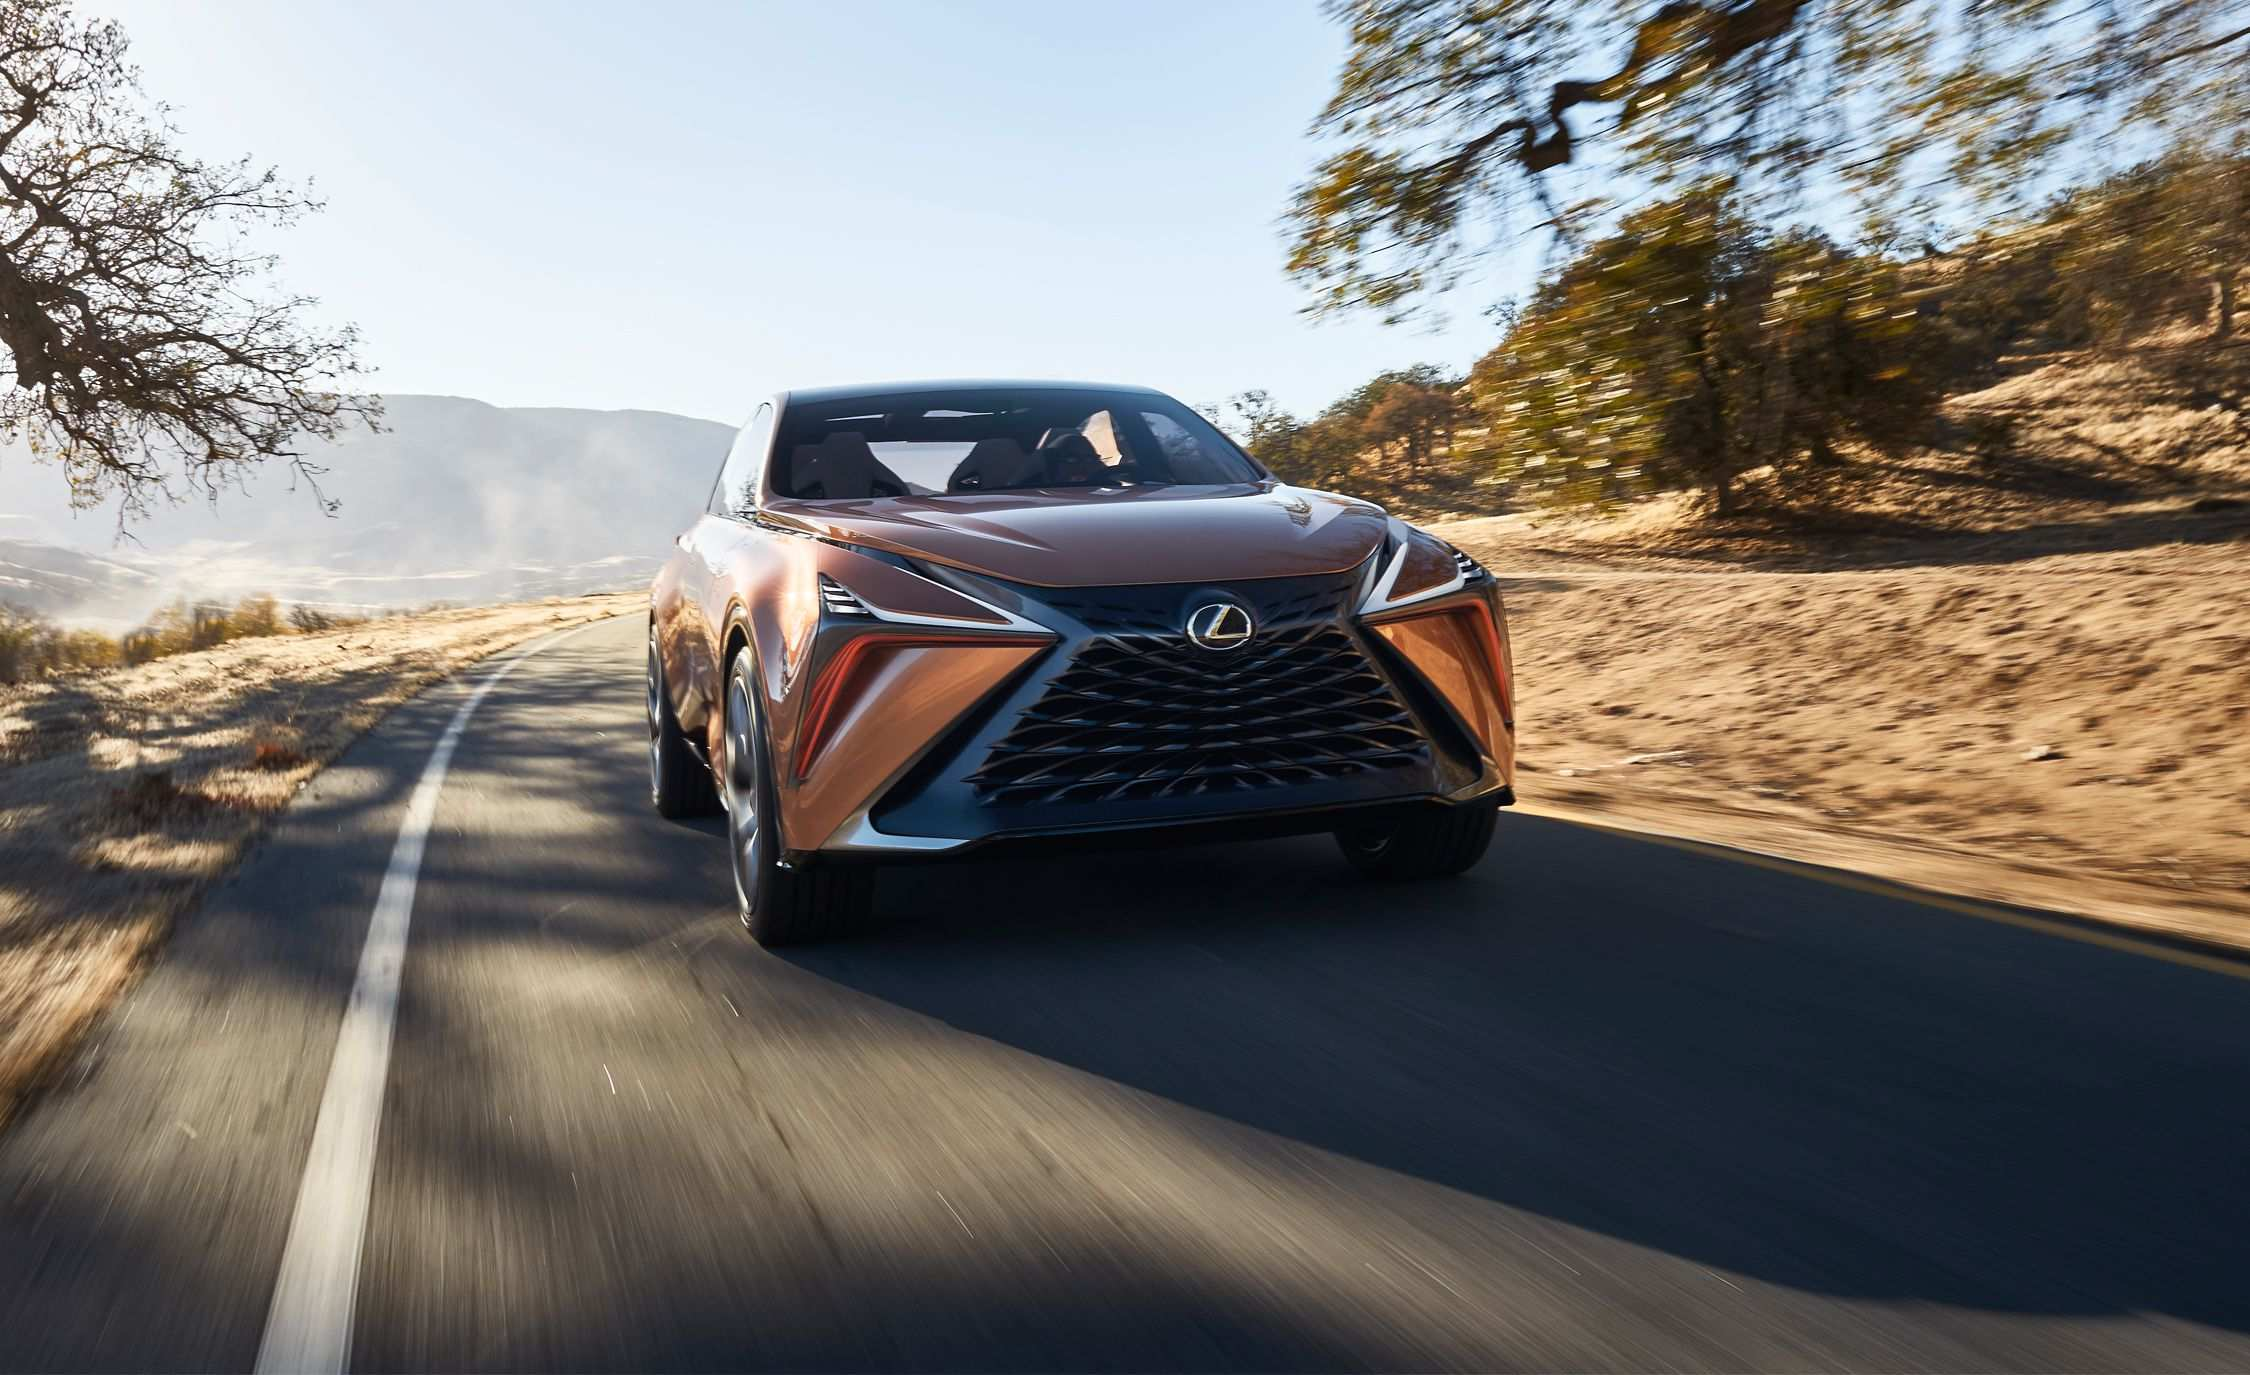 62 The Best 2020 Lexus Lf1 Pricing